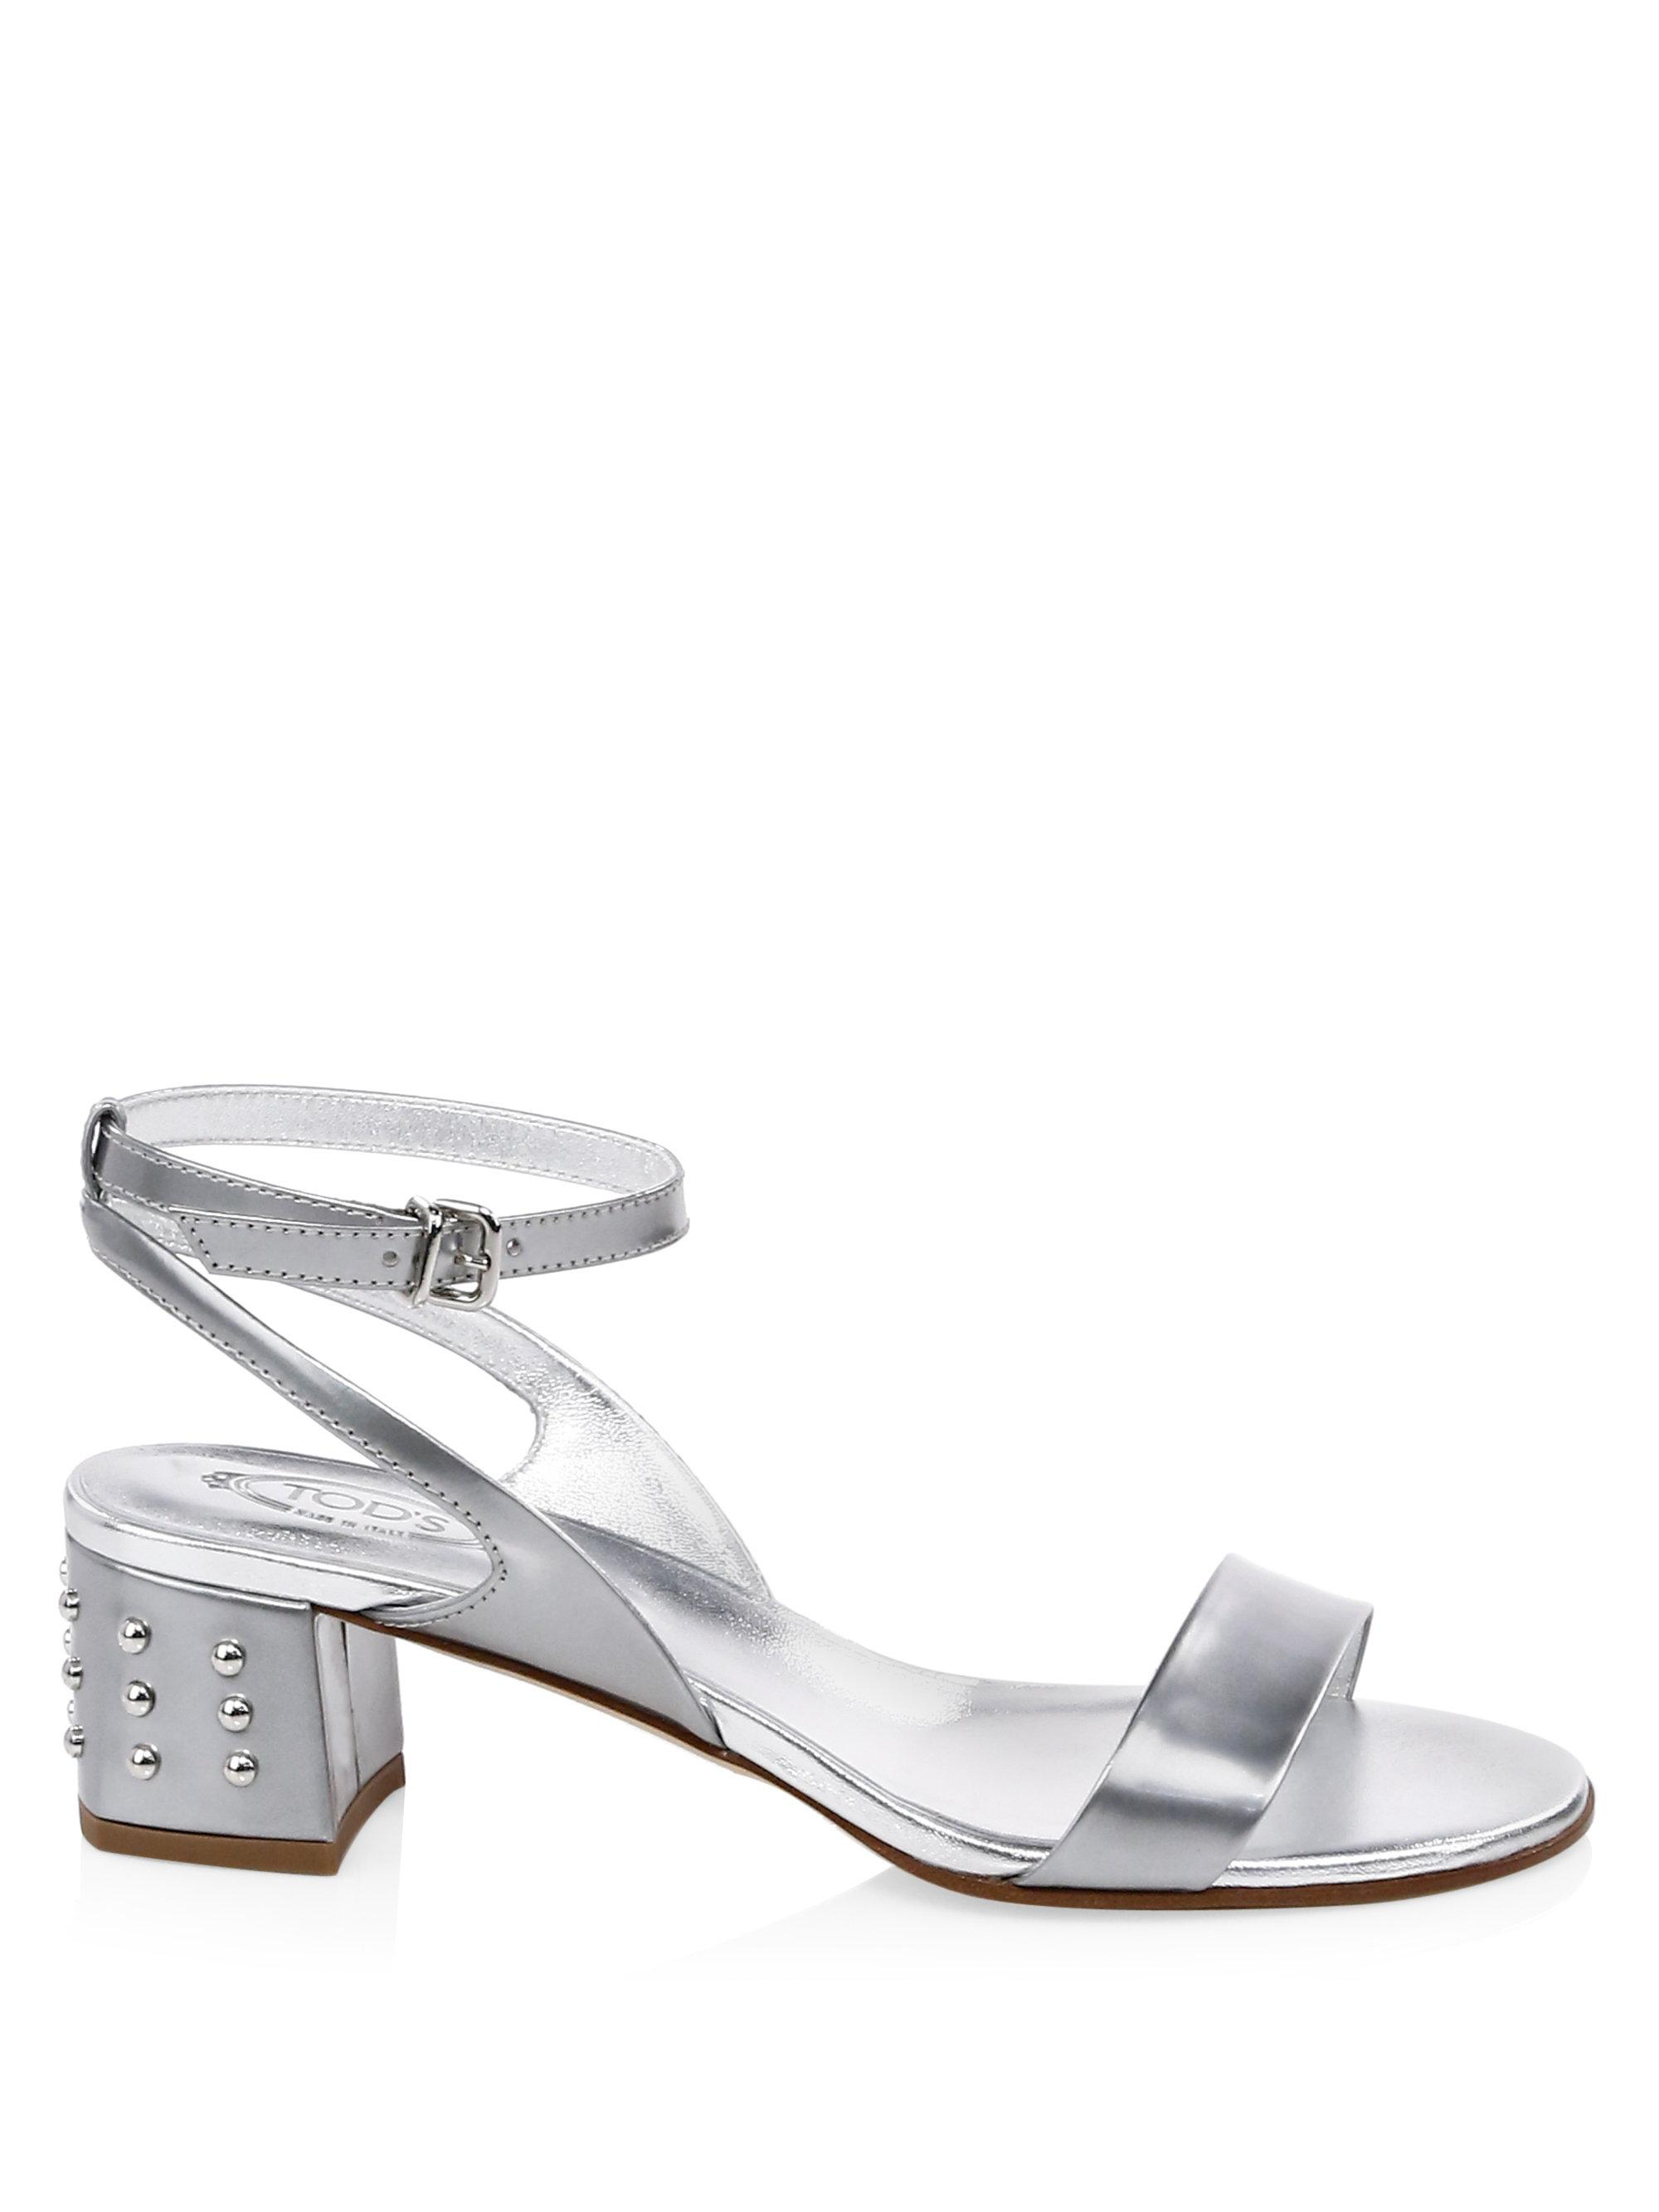 Tod's Metallic Leather Slingback Sandals N8l23J